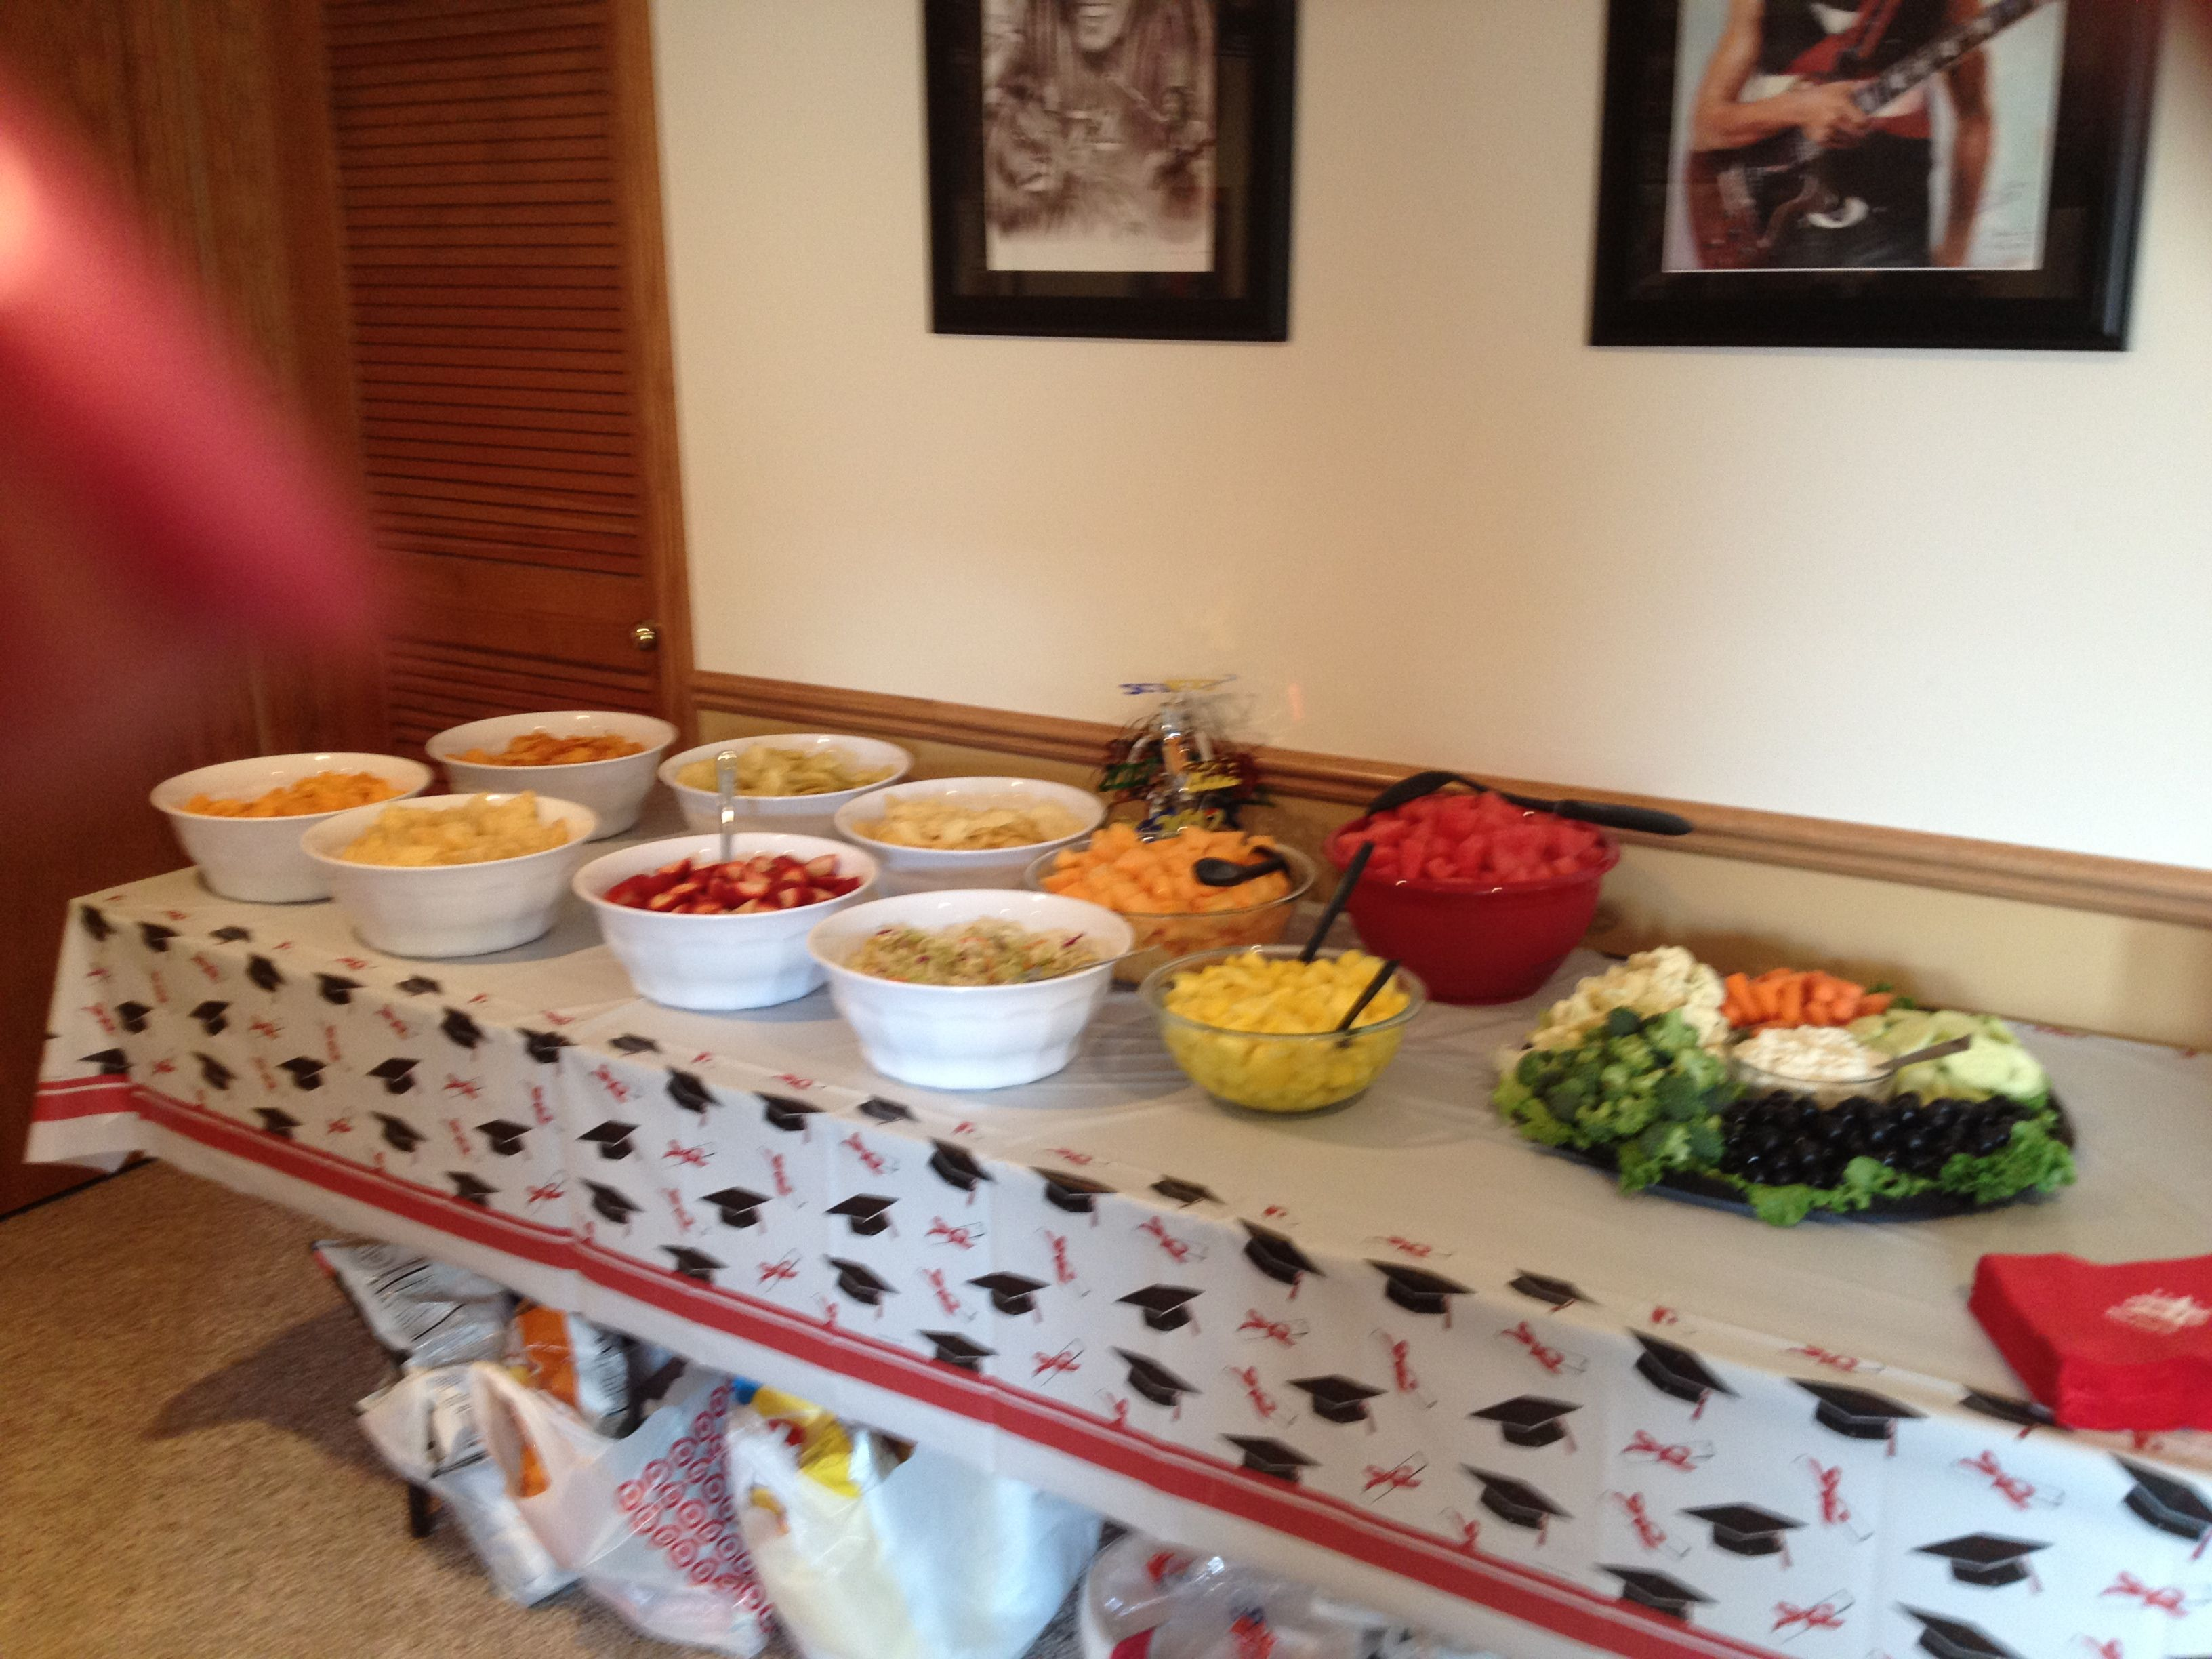 Good Graduation Party Dinner Ideas Part - 1: Graduation Party Ideas Photo Gallery - Graduation Party Ideas